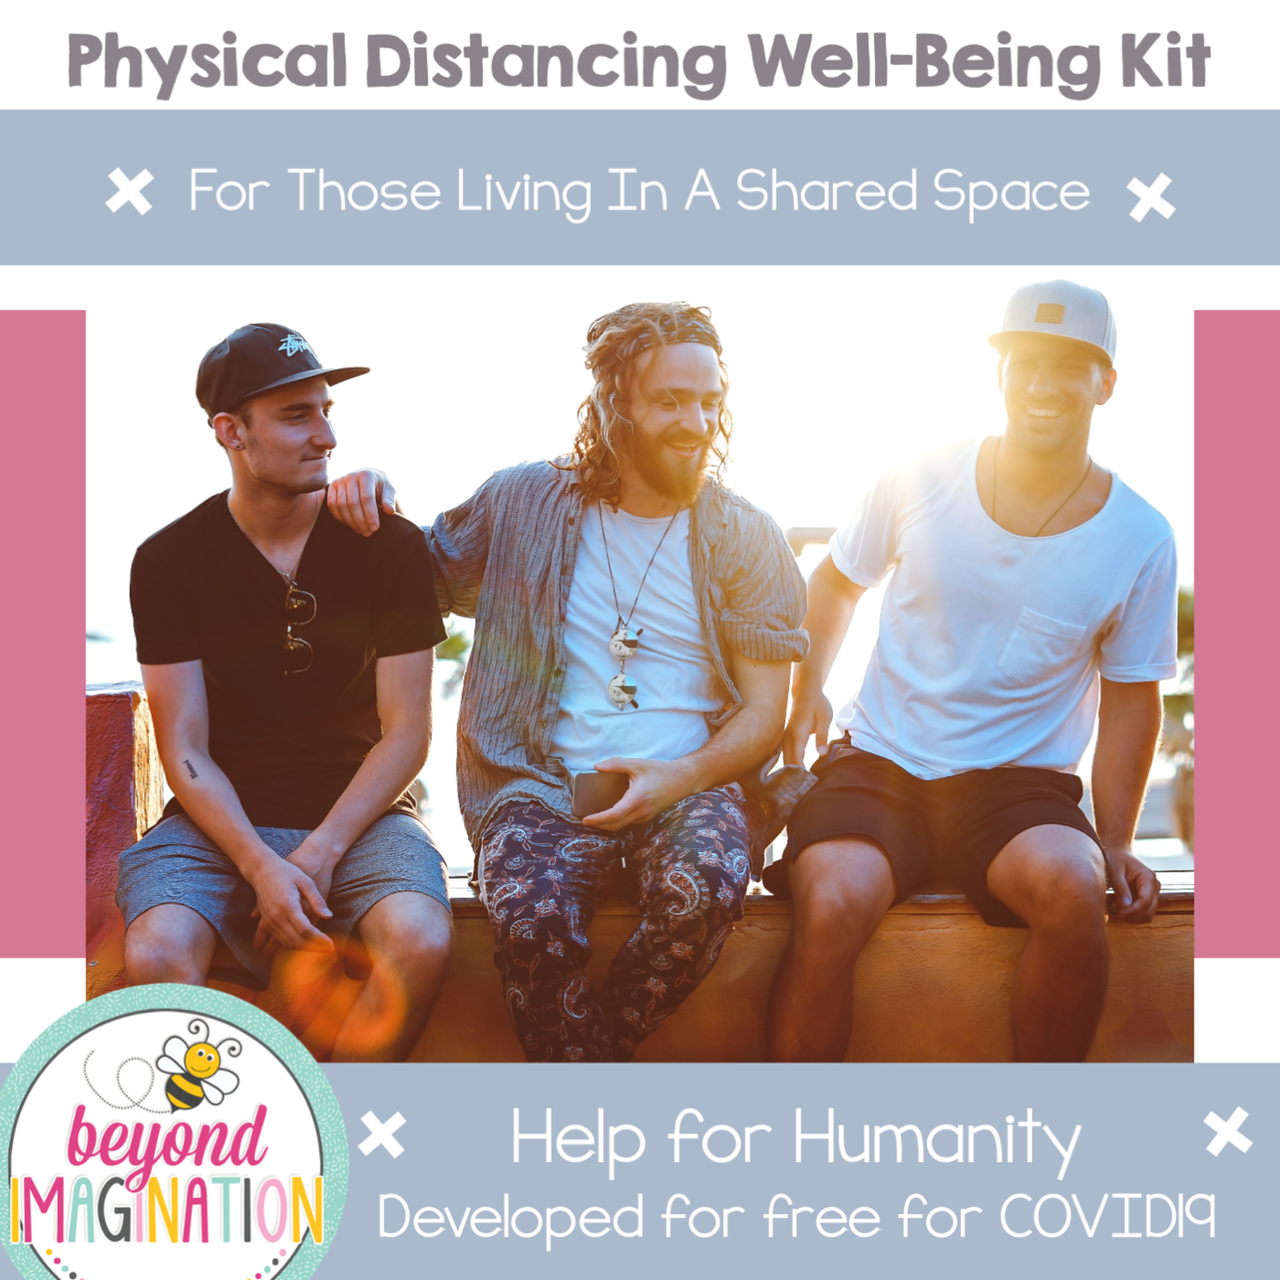 Living in a Shared Space Physical Distancing Well-Being Kit Help for Humanity COVID-19